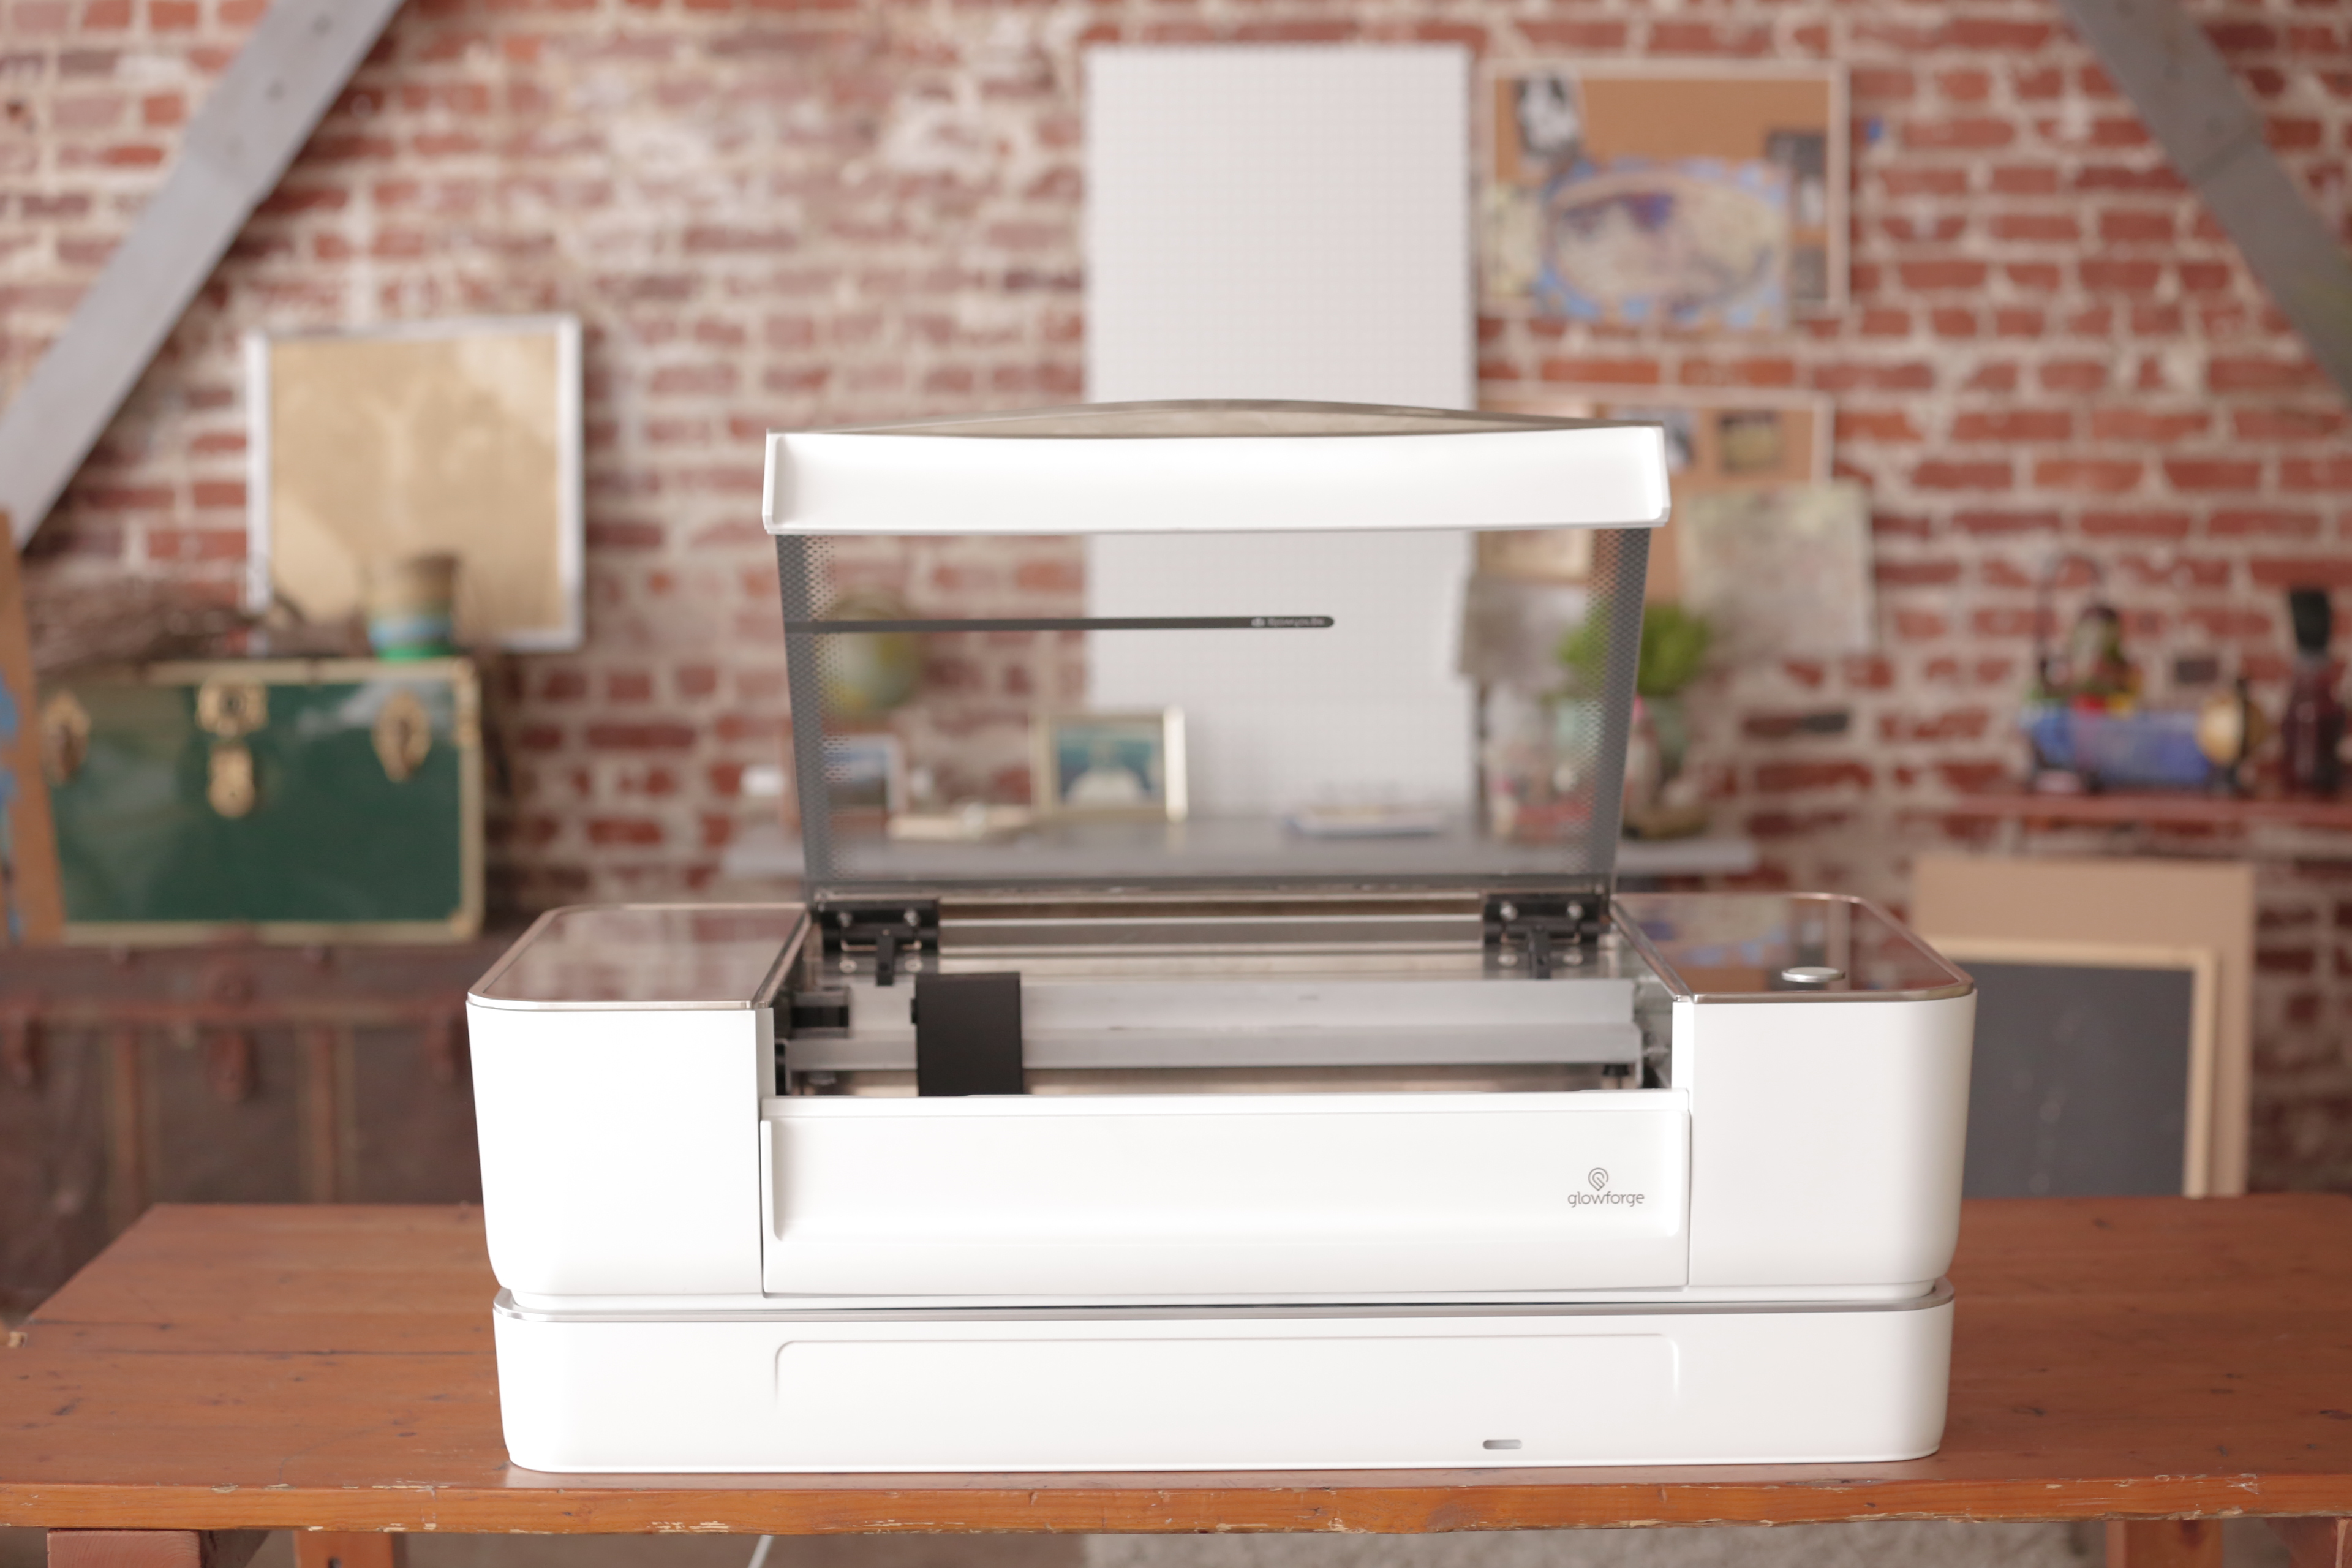 Glowforge: The 3D Laser Printer that Broke Crowdfunding Records